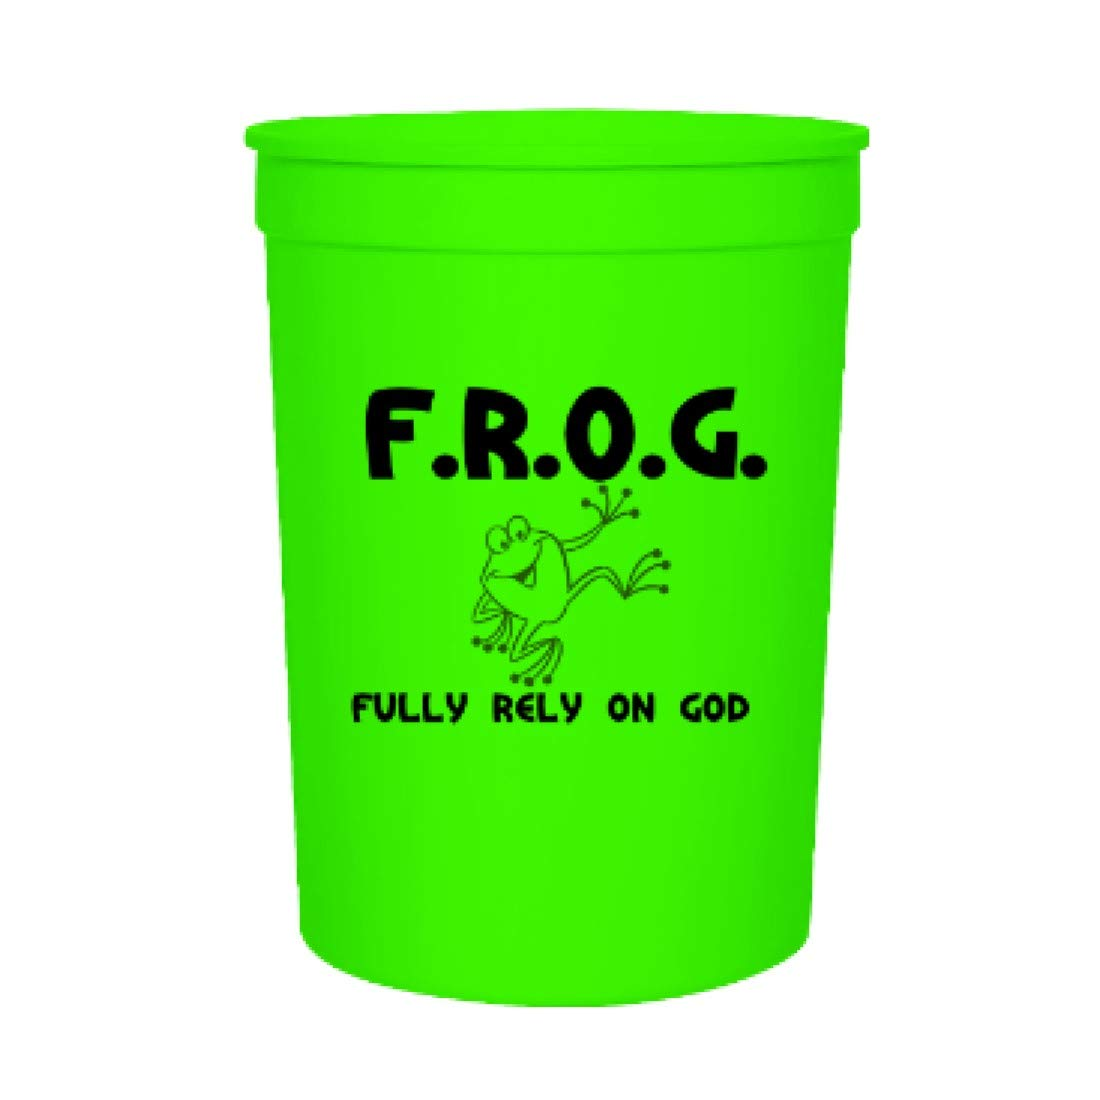 Green Fully Rely On God 12oz Stadium Cups (100 Count) Bulk